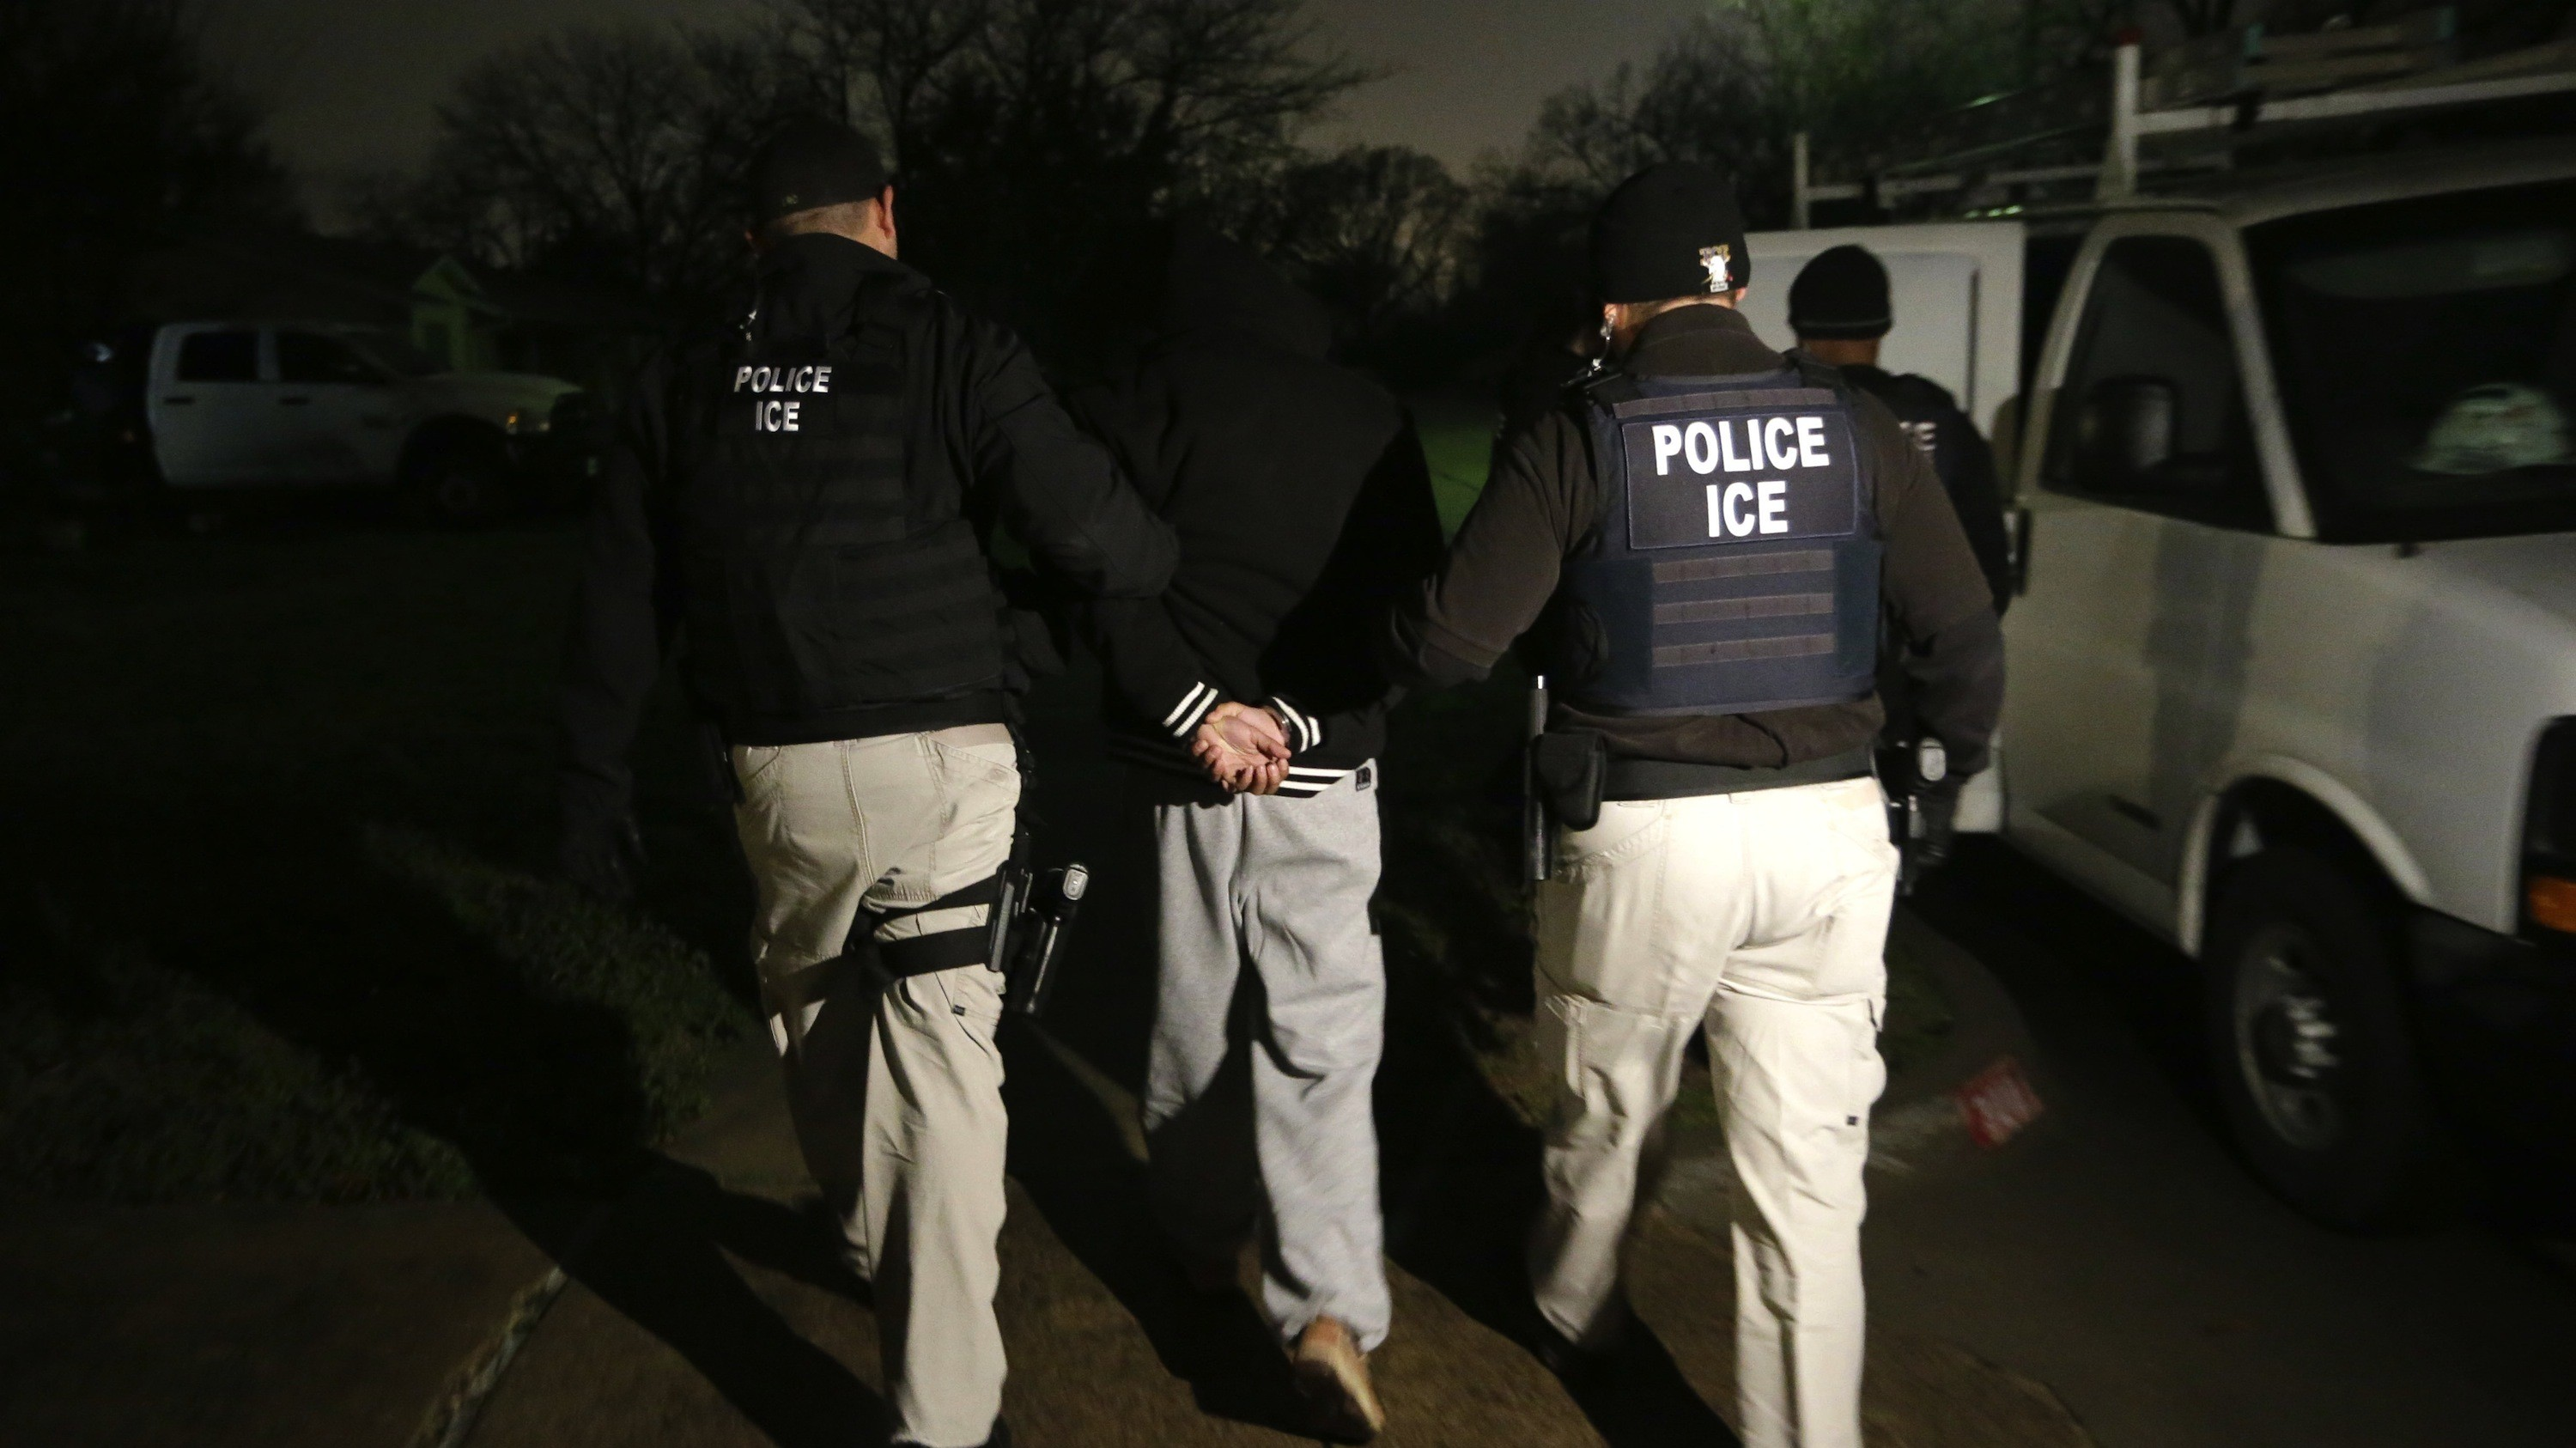 There's a New US Policy on 'Sanctuary Cities' That Makes It Easier for ICE to Deport People